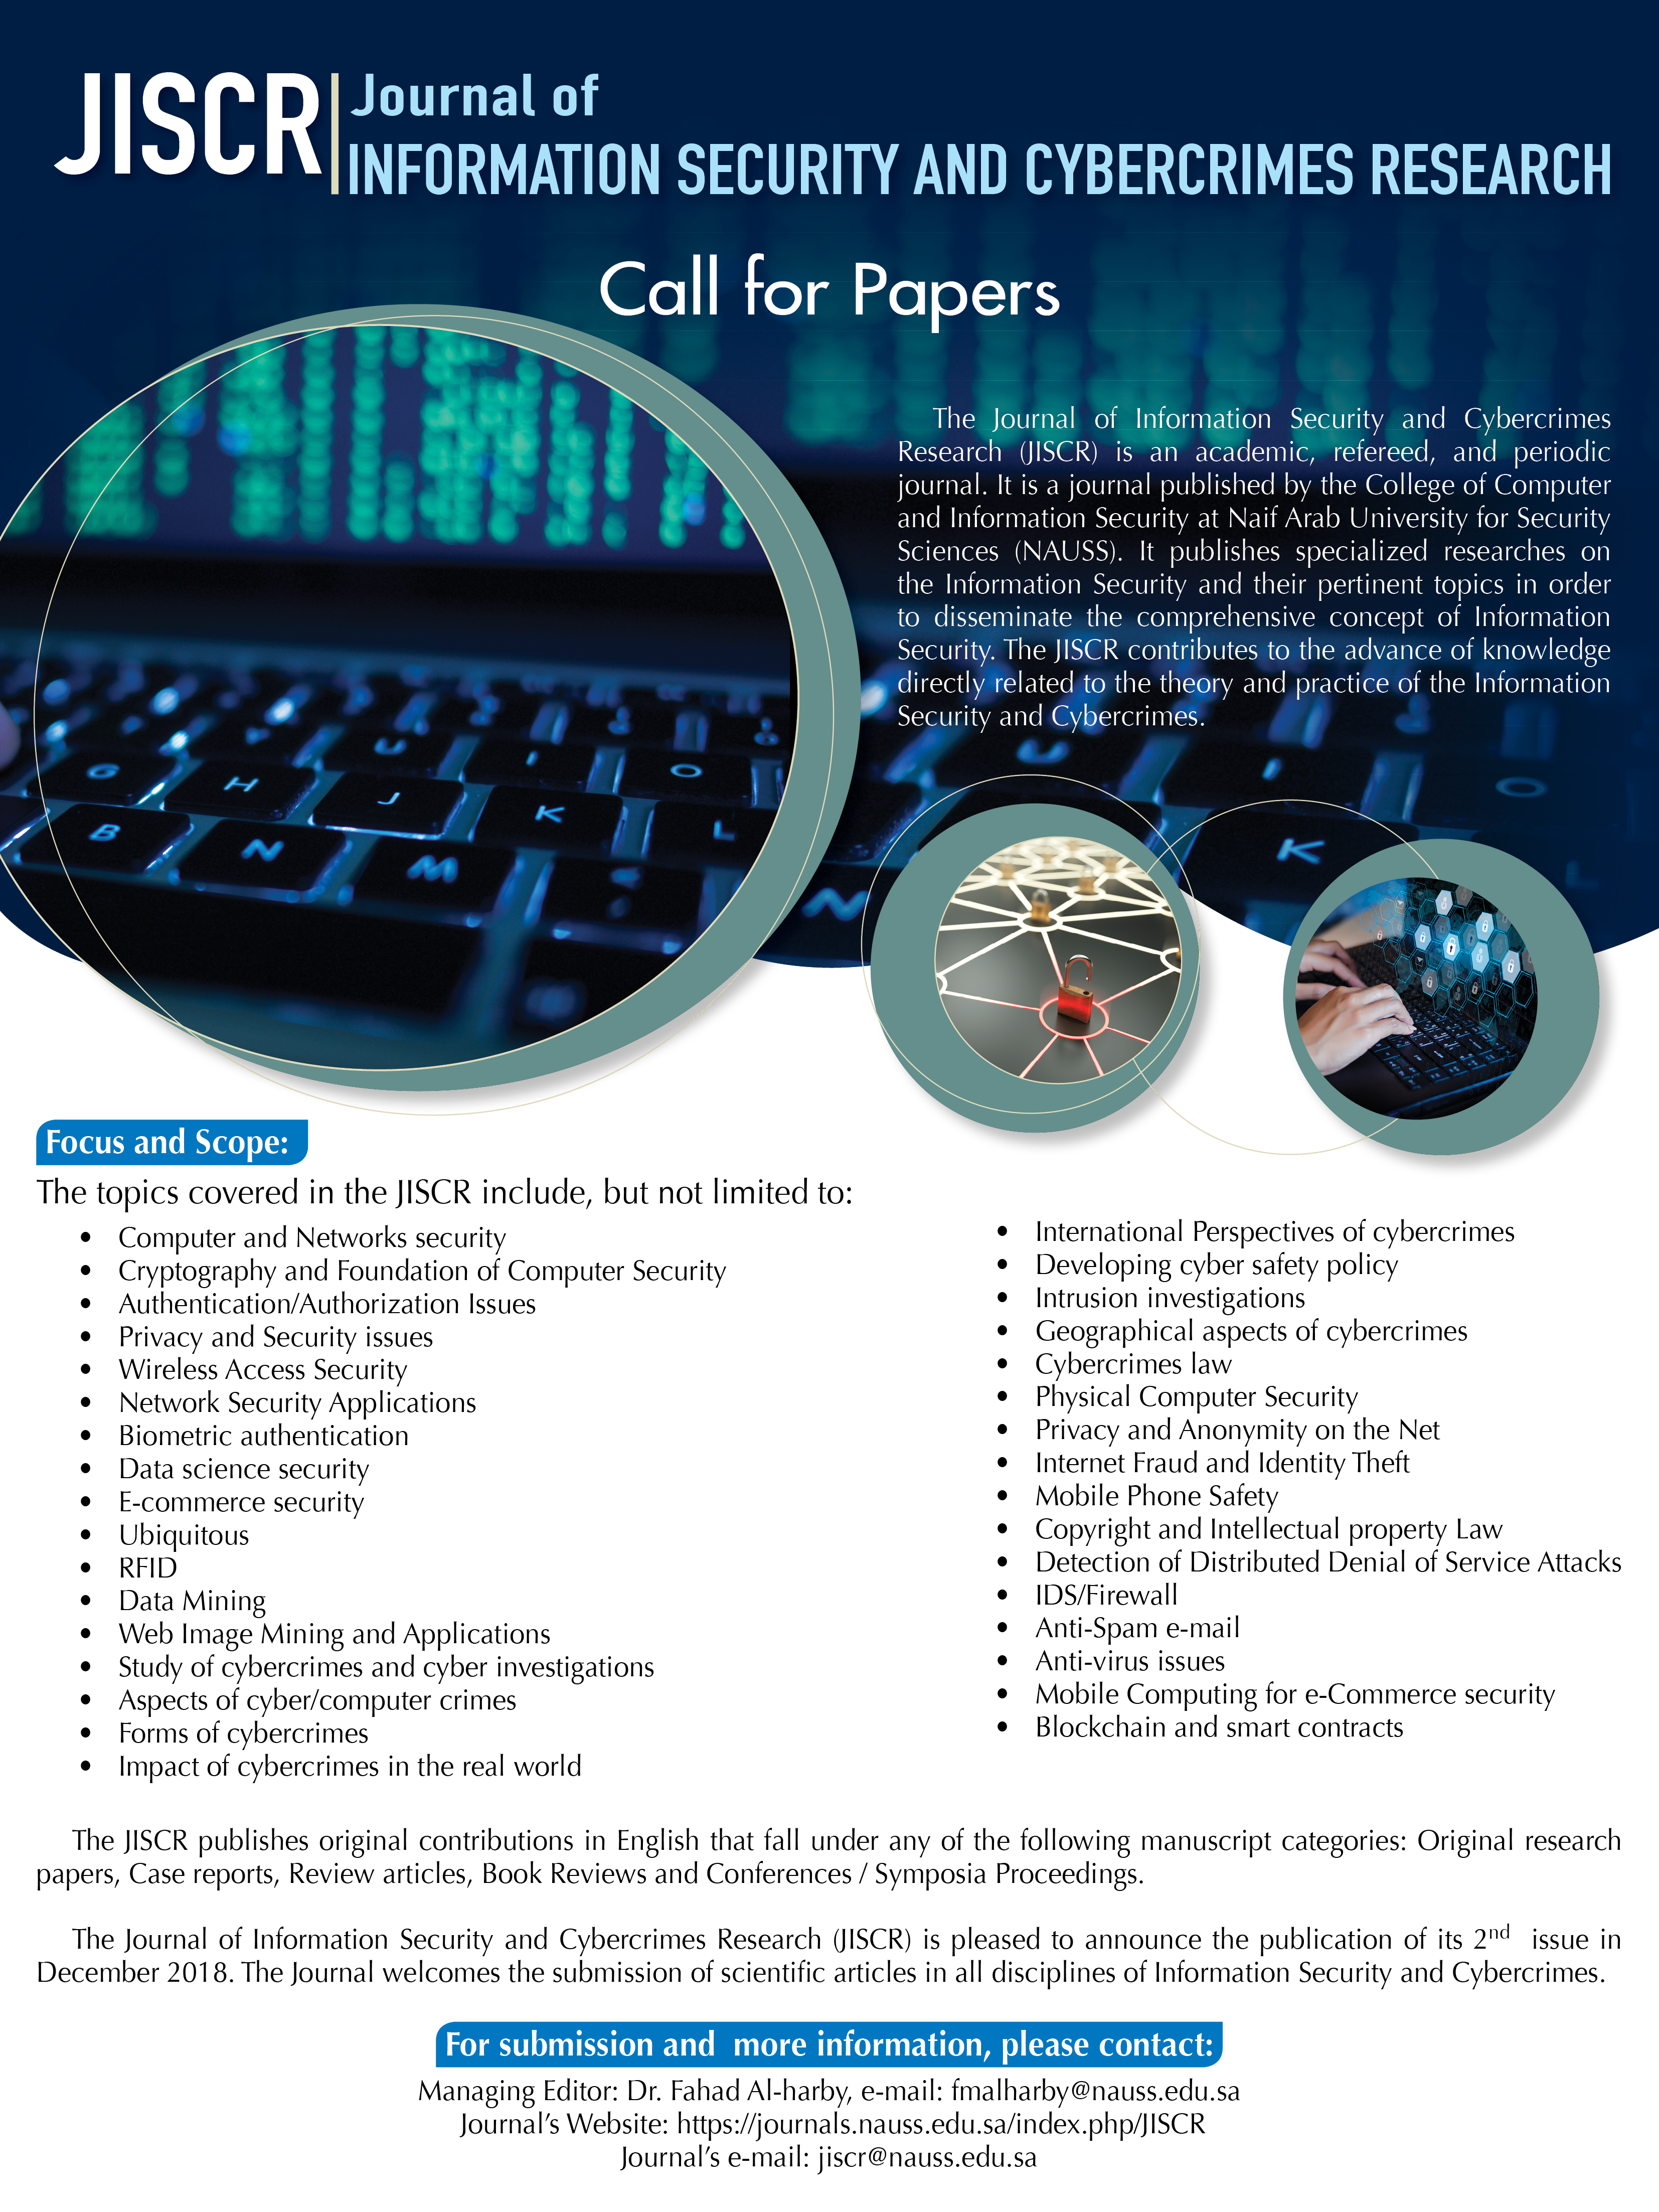 021 Research Paper Call For December Cyber Security Wondrous Papers 2018 Pdf Topics Full